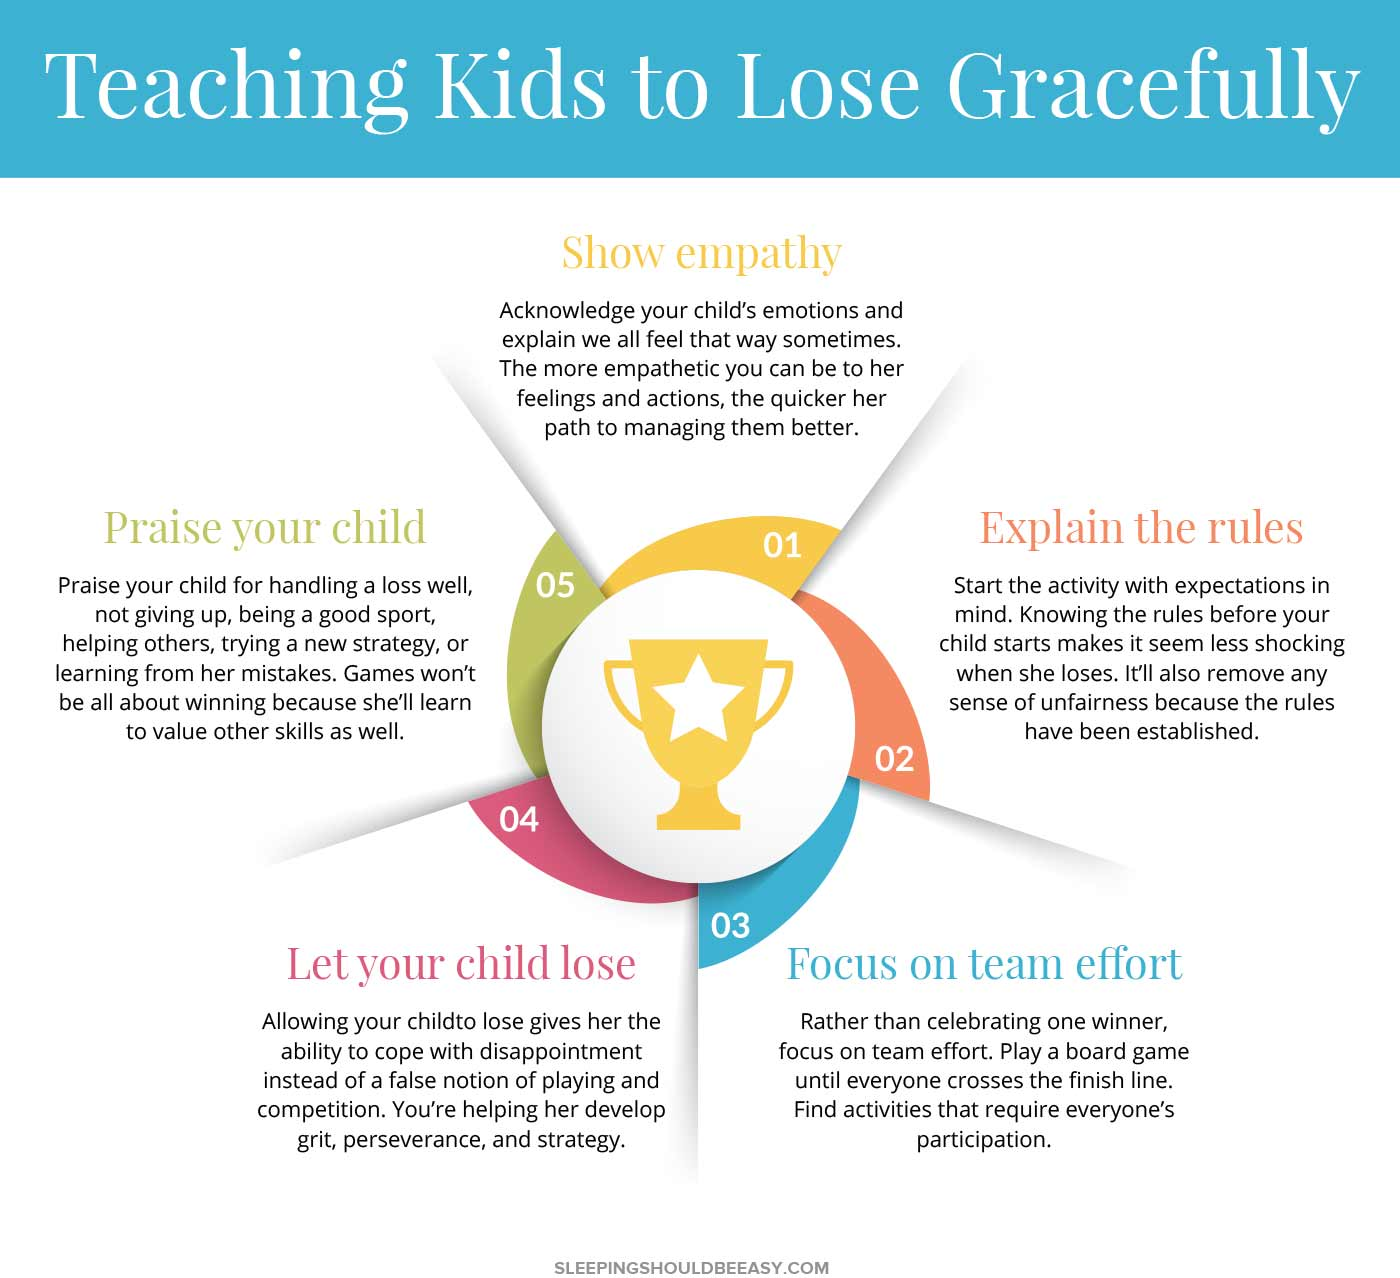 Teaching kids to lose gracefully